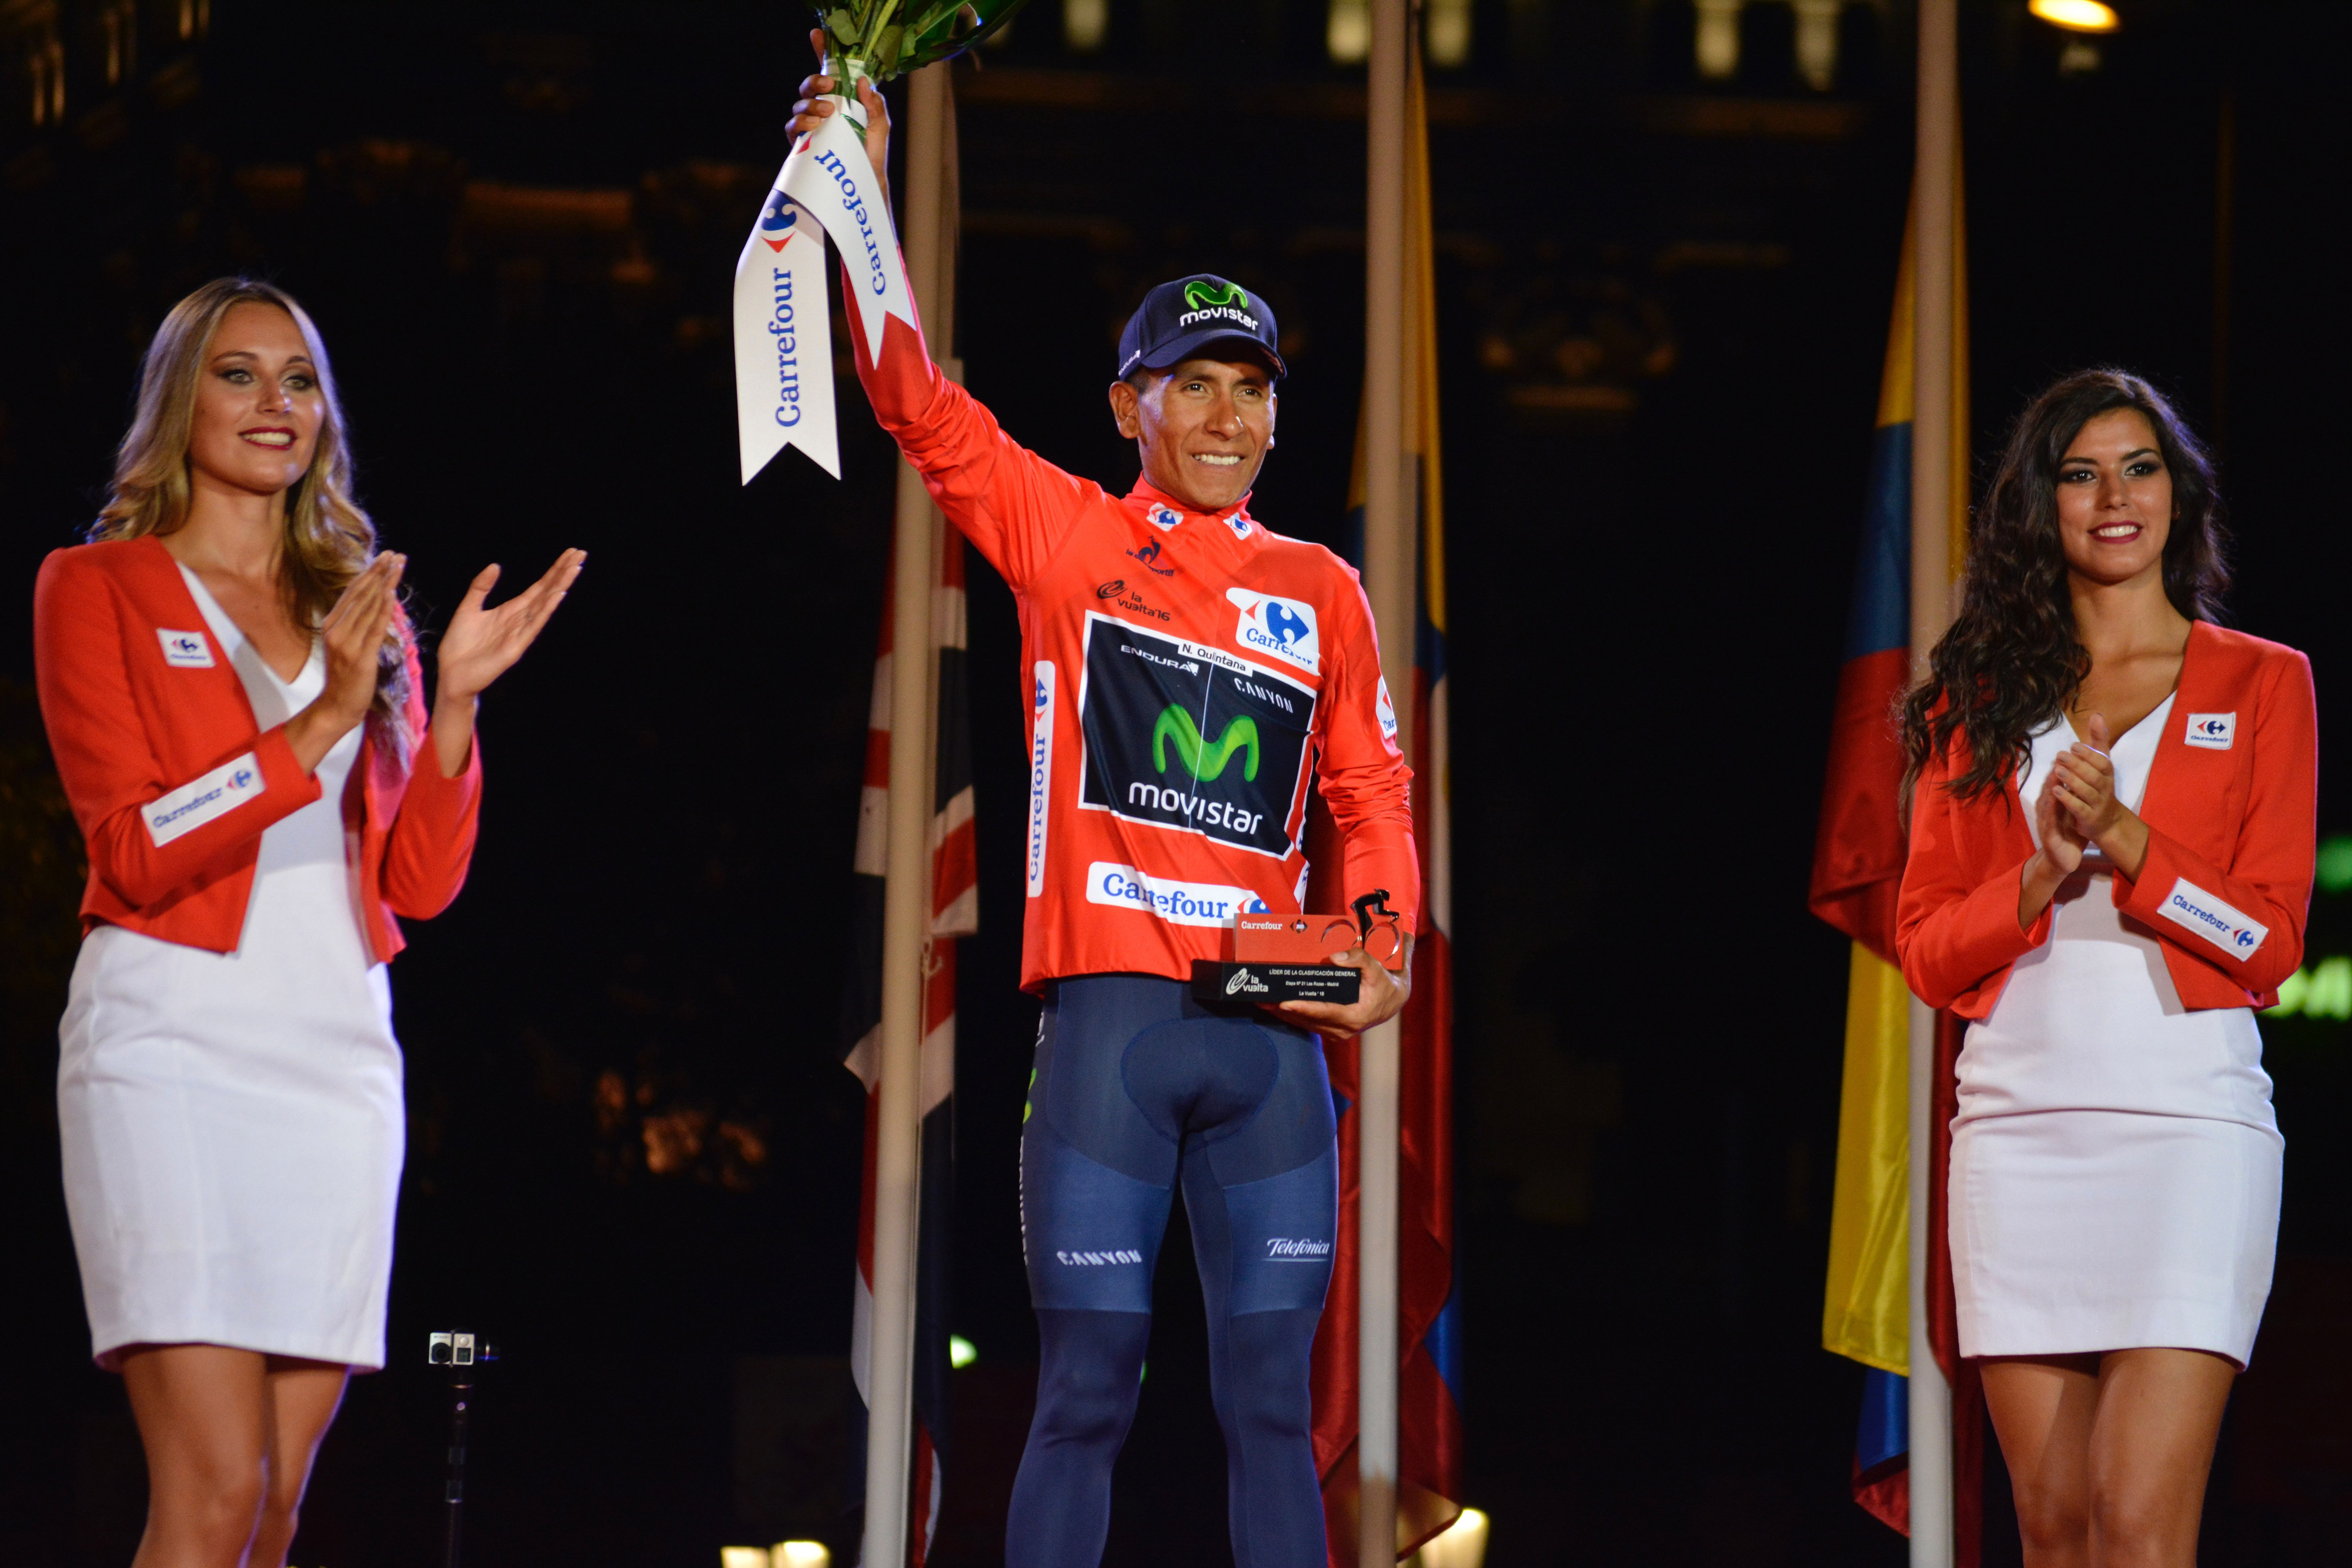 Quintana on the top step of the 2016 Vuelta (Photo: Movistar Team)